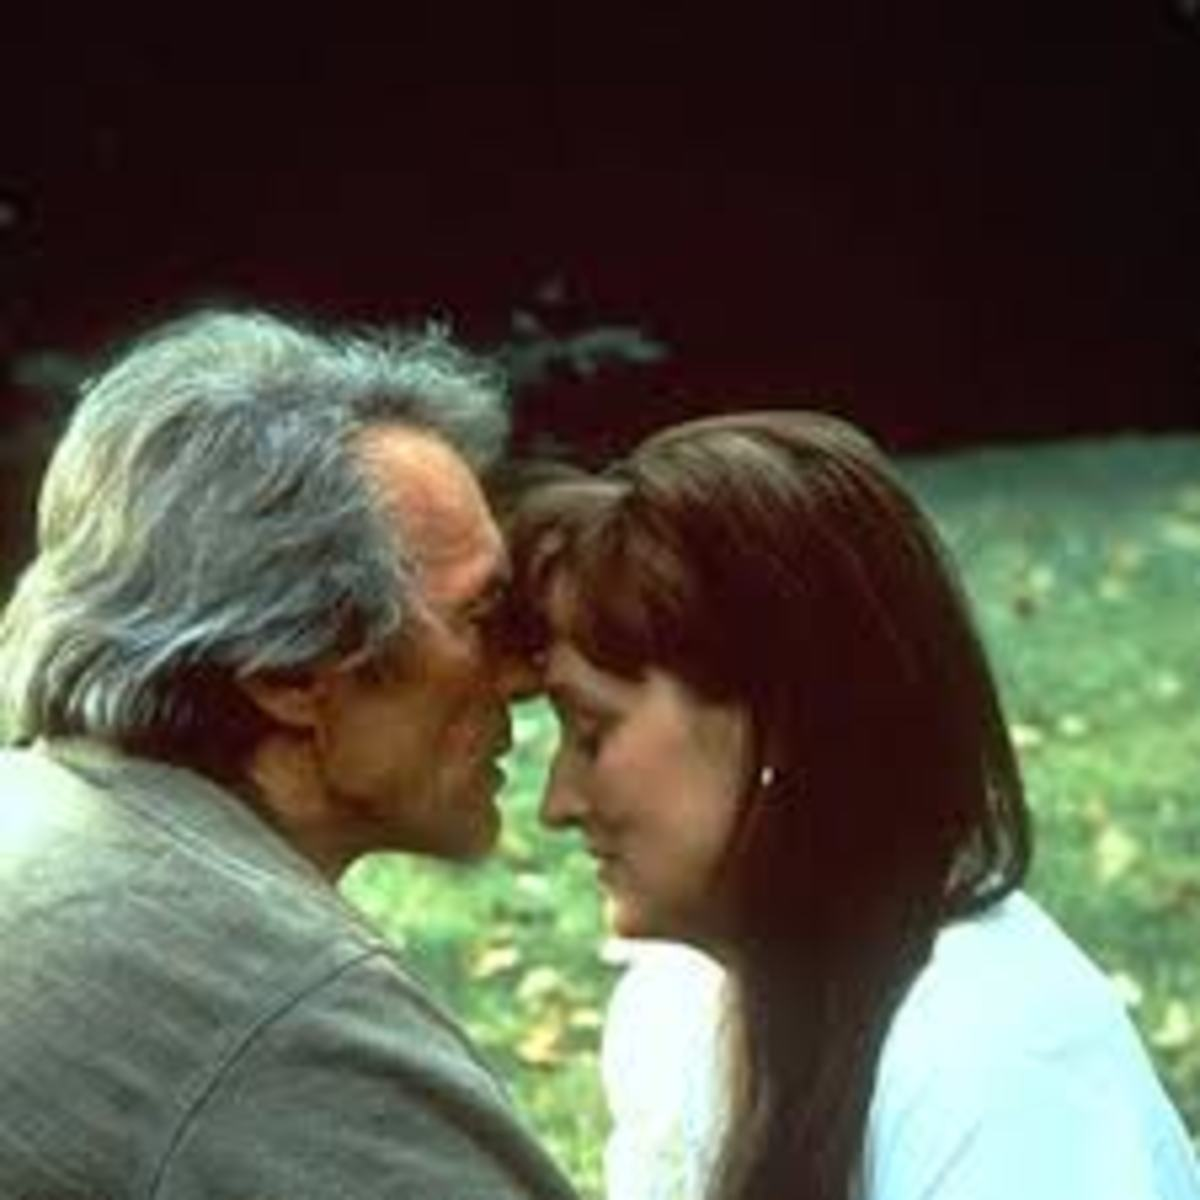 Robert and Francesca, the main characters of the movie Bridges of Madison County